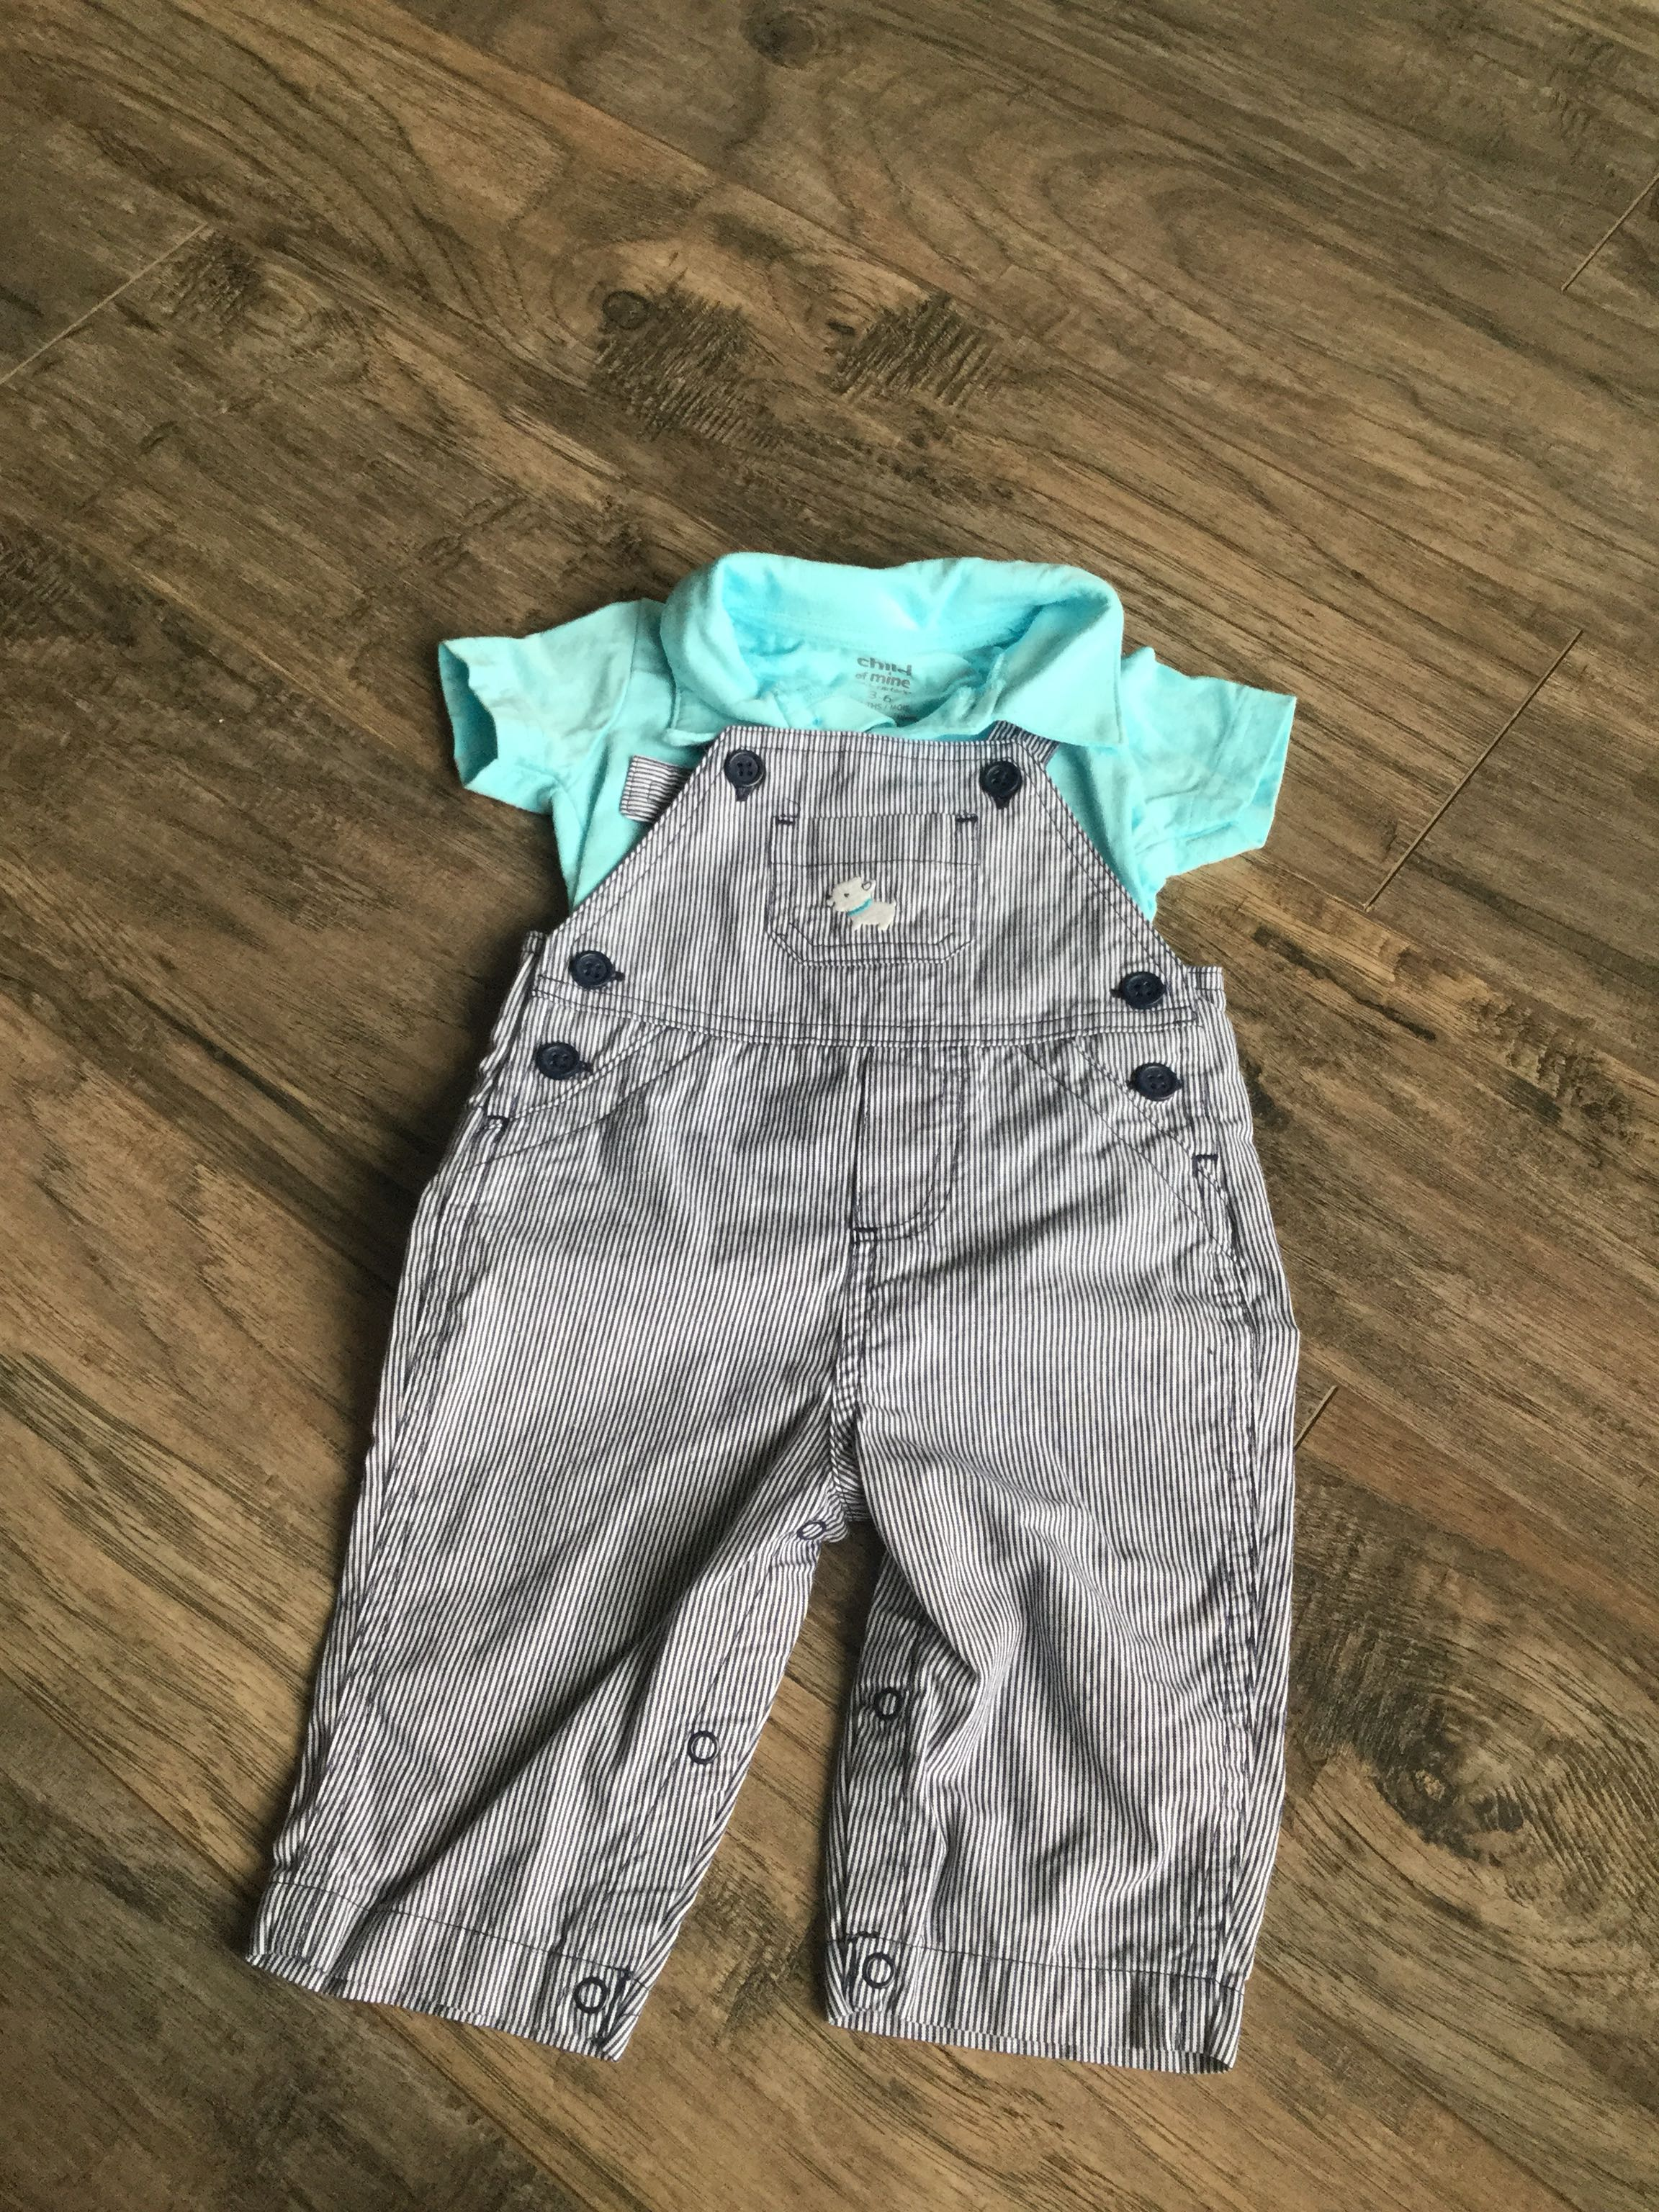 3-6 Month Carters Brand Outfit